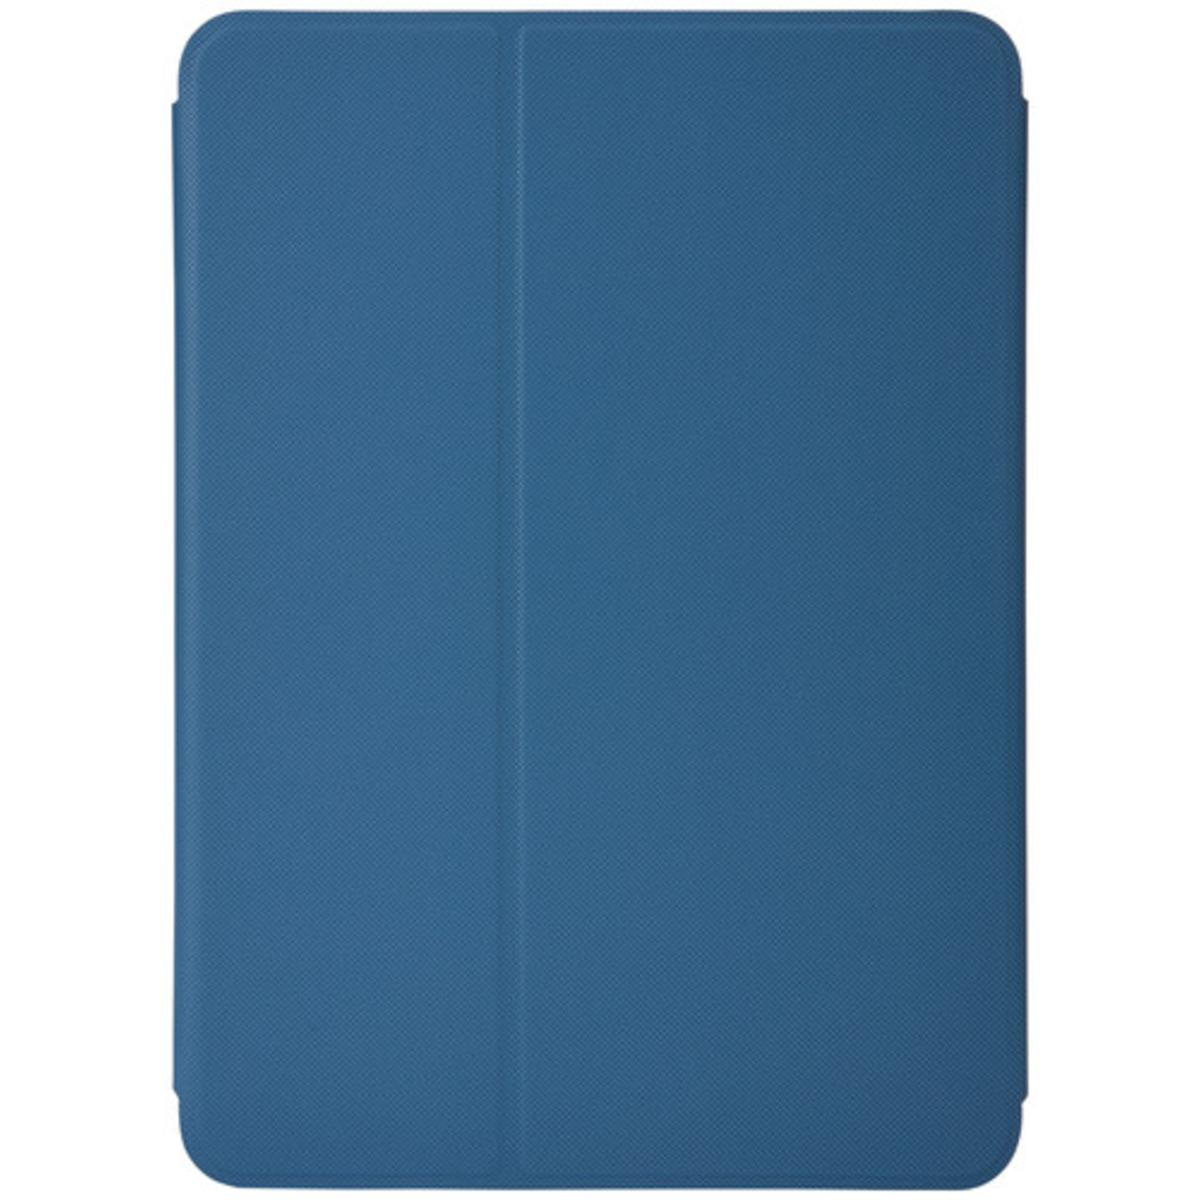 "Case Logic SnapView 2.0 Case for 9.7"" iPad Pro"